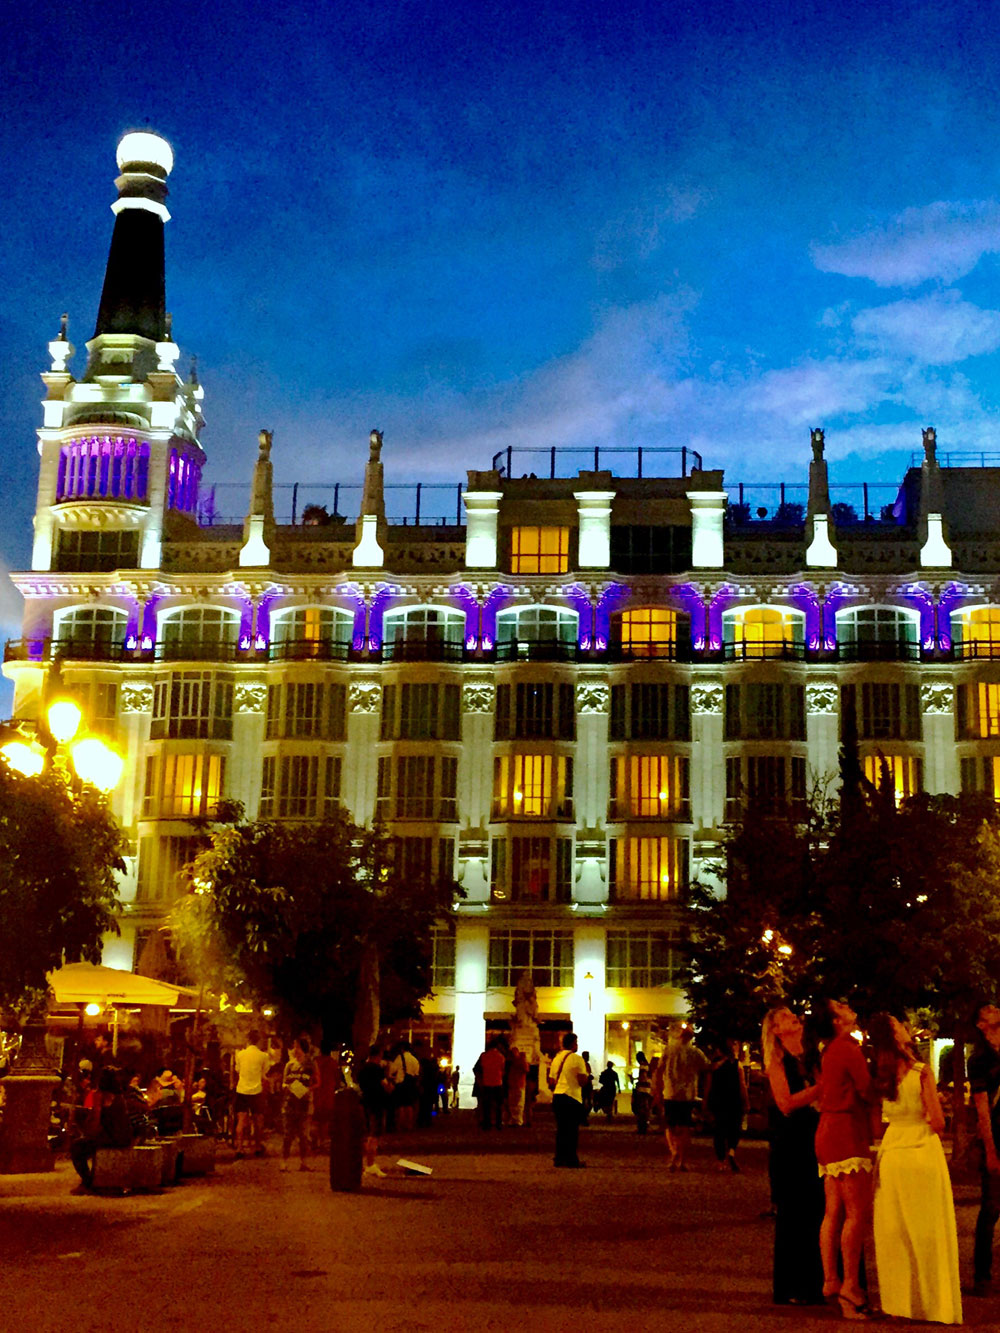 Plaza de Santa Ana at night - Passports and Plates